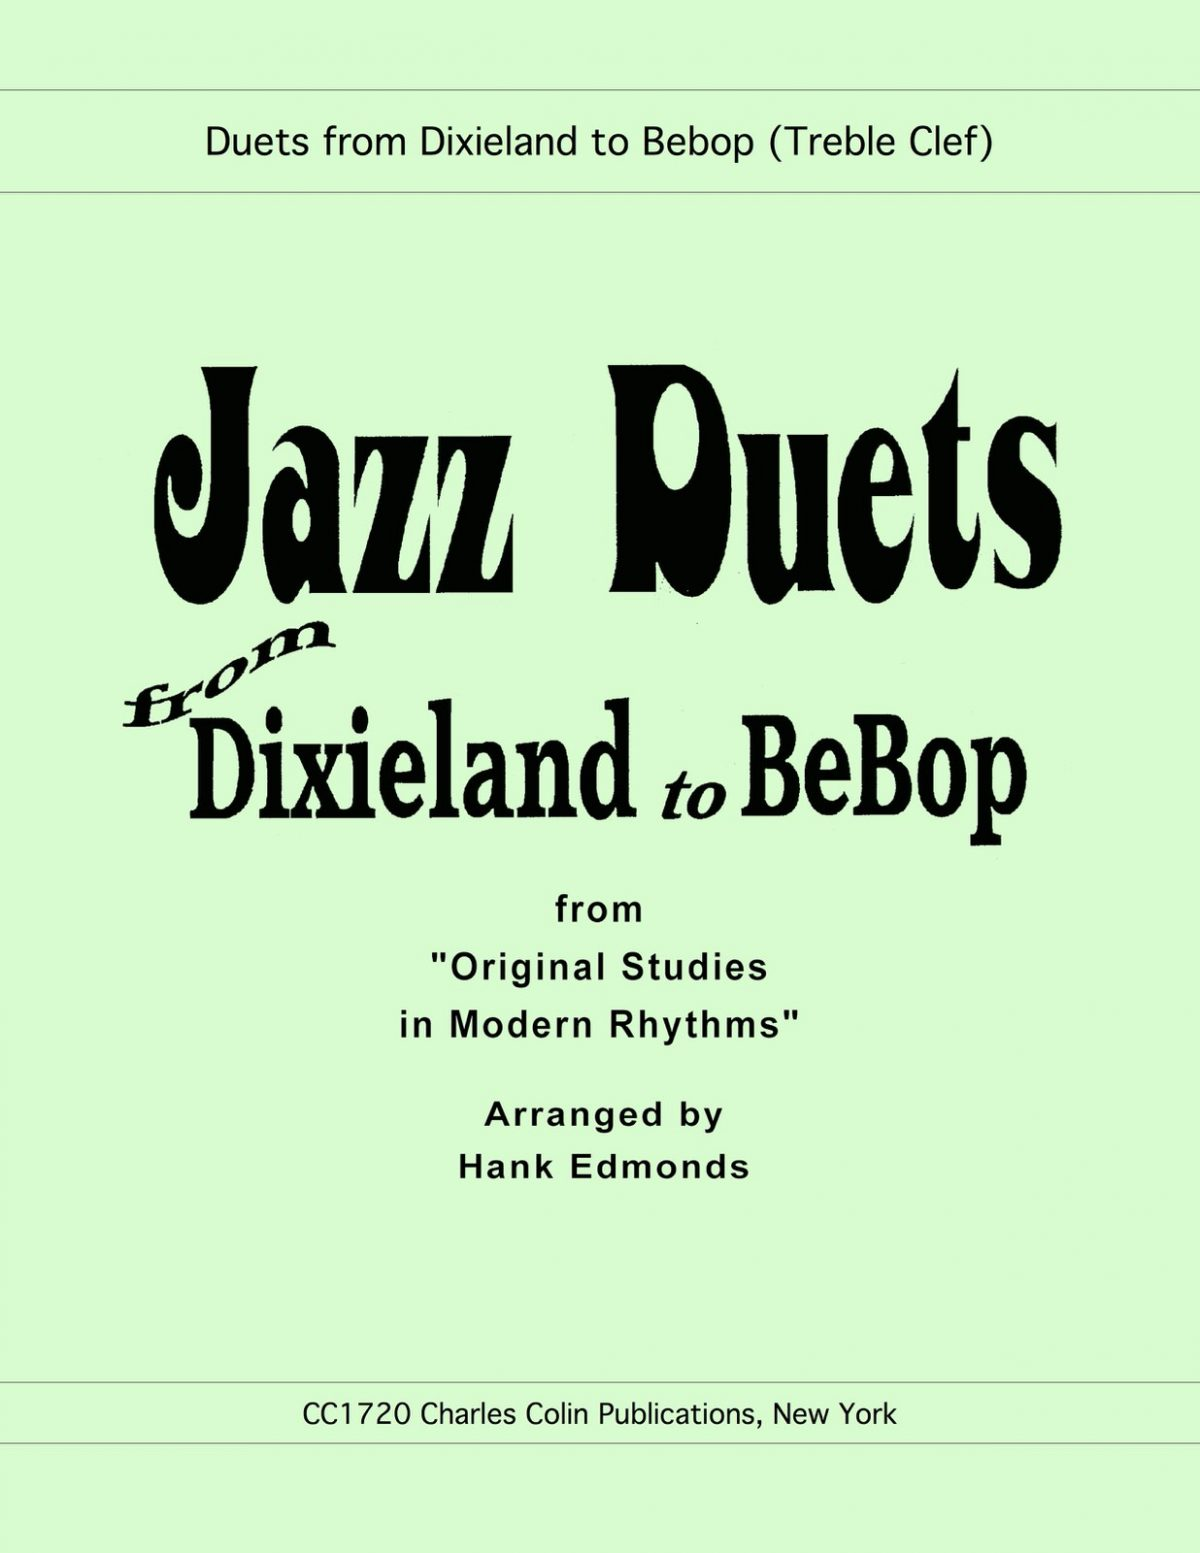 Edmonds, Jazz Duets from Dixie to Bebop-p01